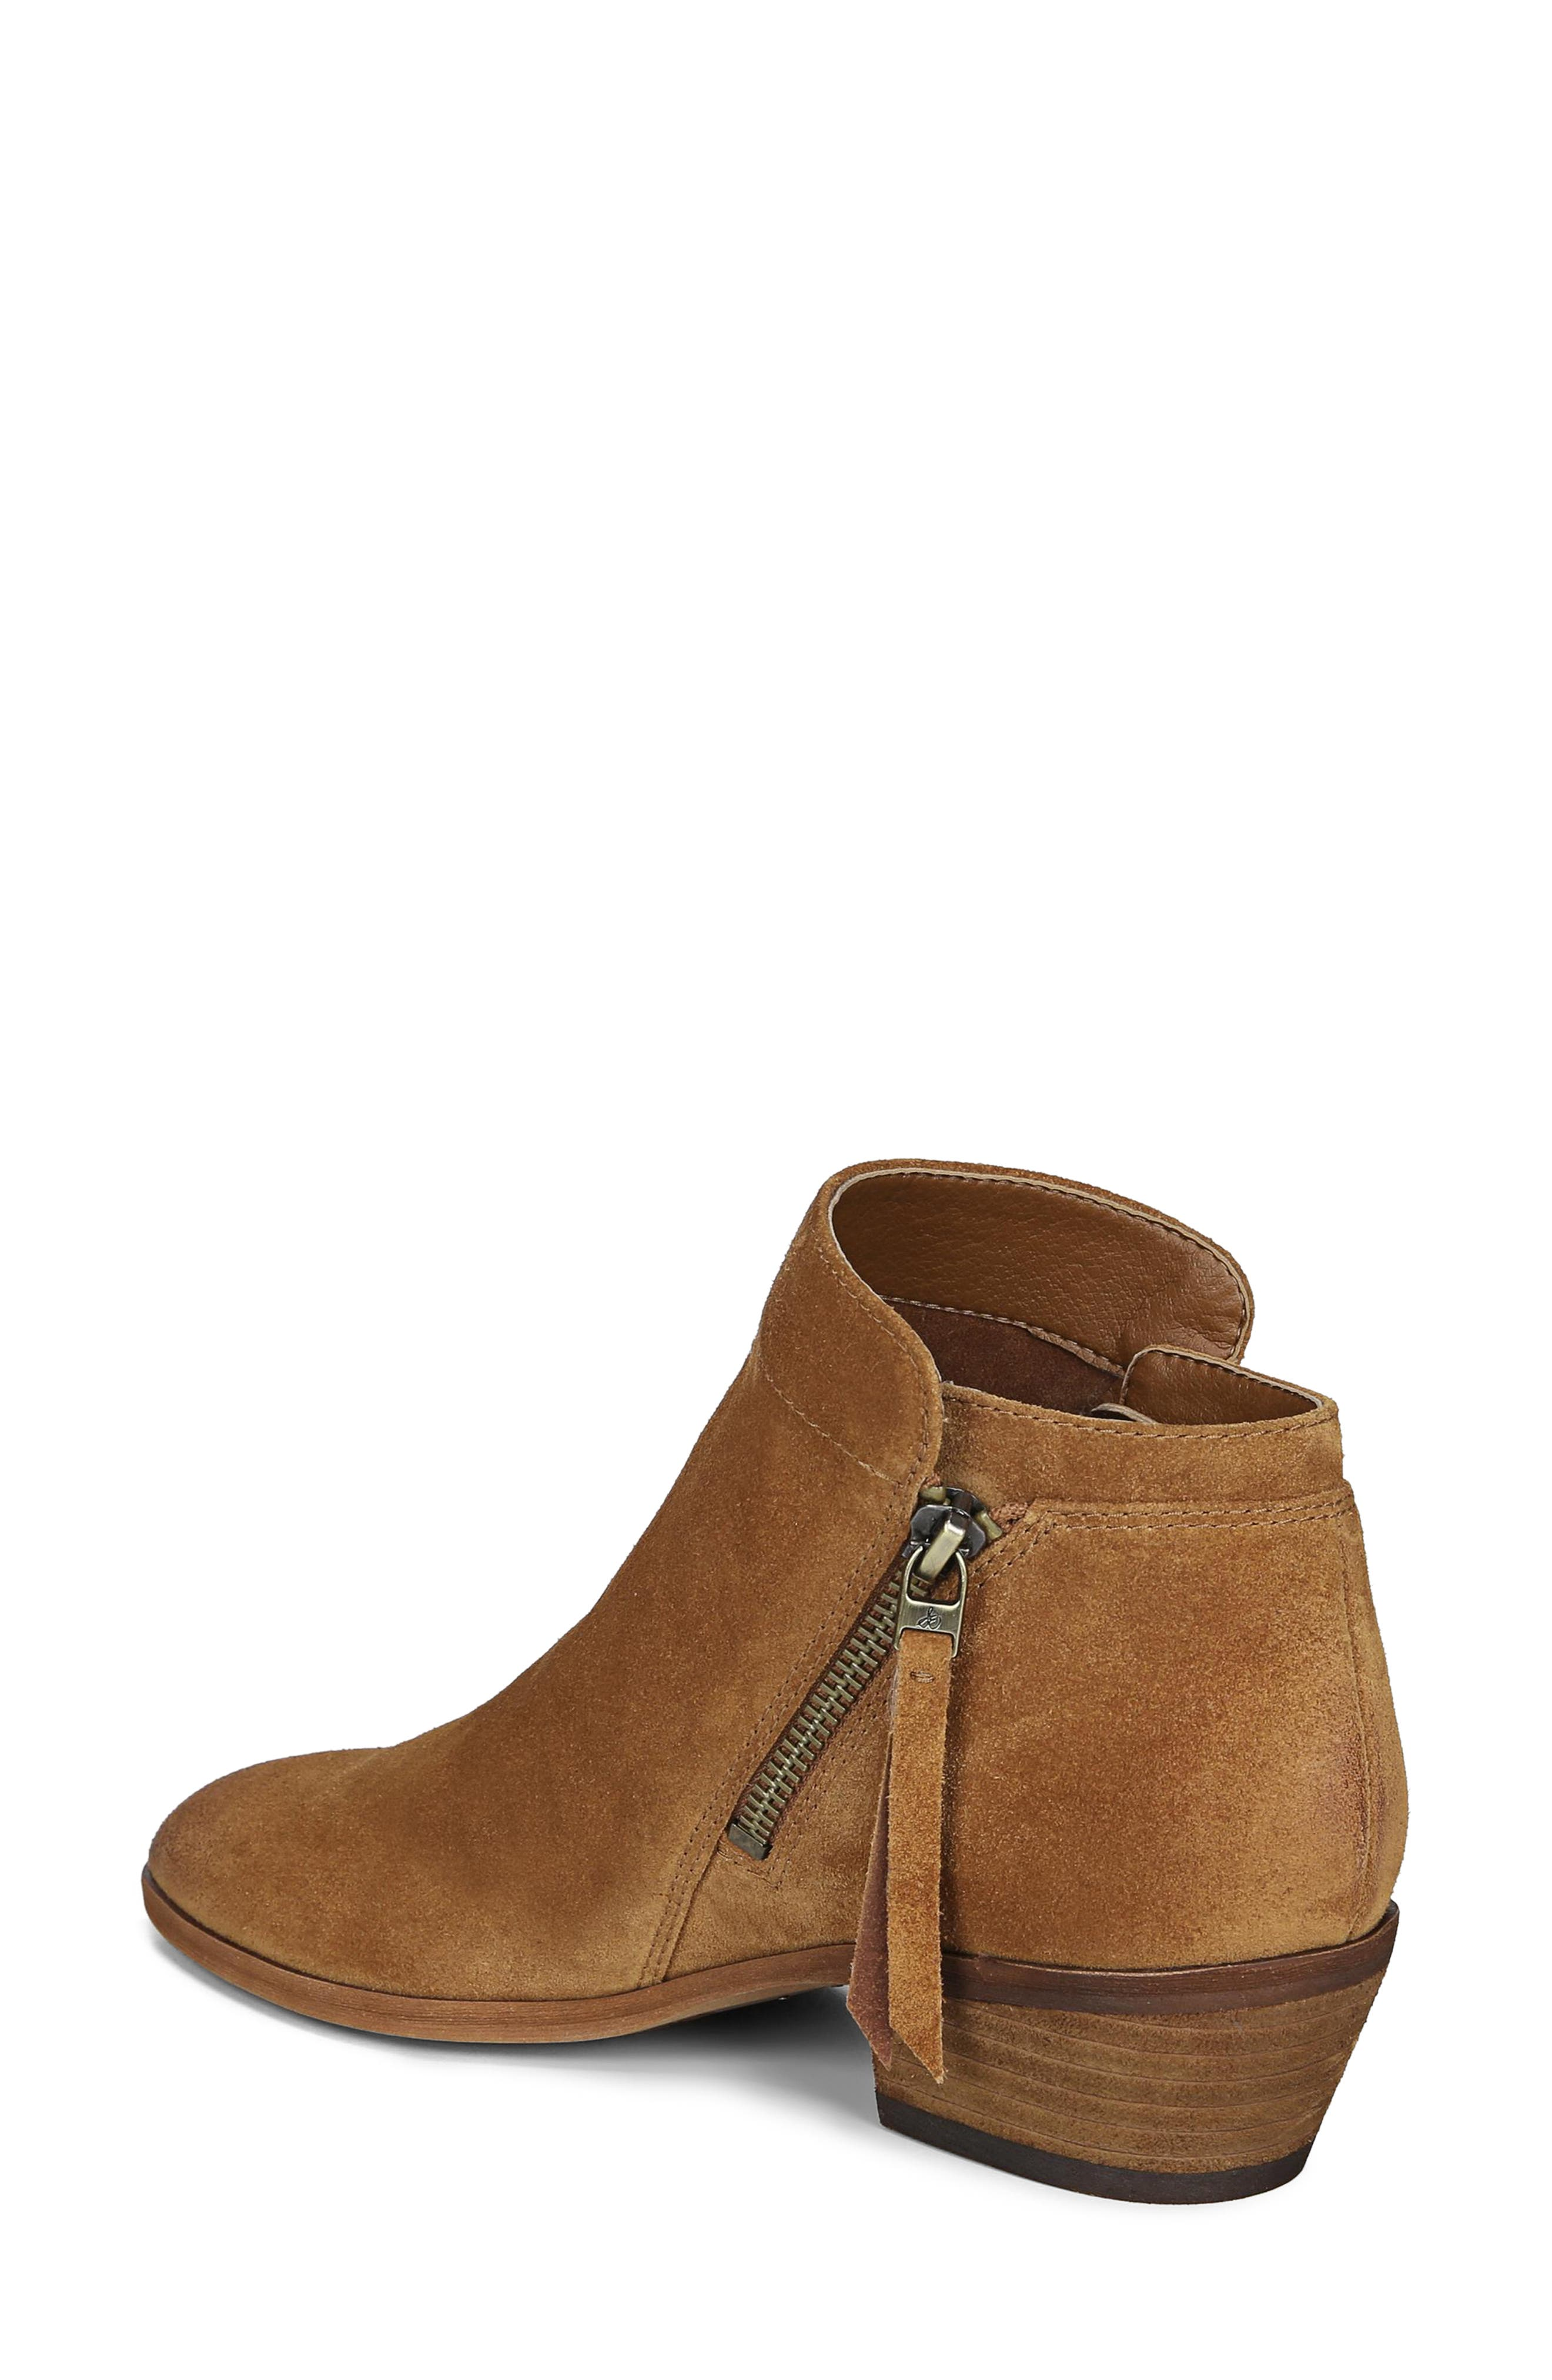 Packer Bootie,                             Alternate thumbnail 2, color,                             LUGGAGE SUEDE LEATHER